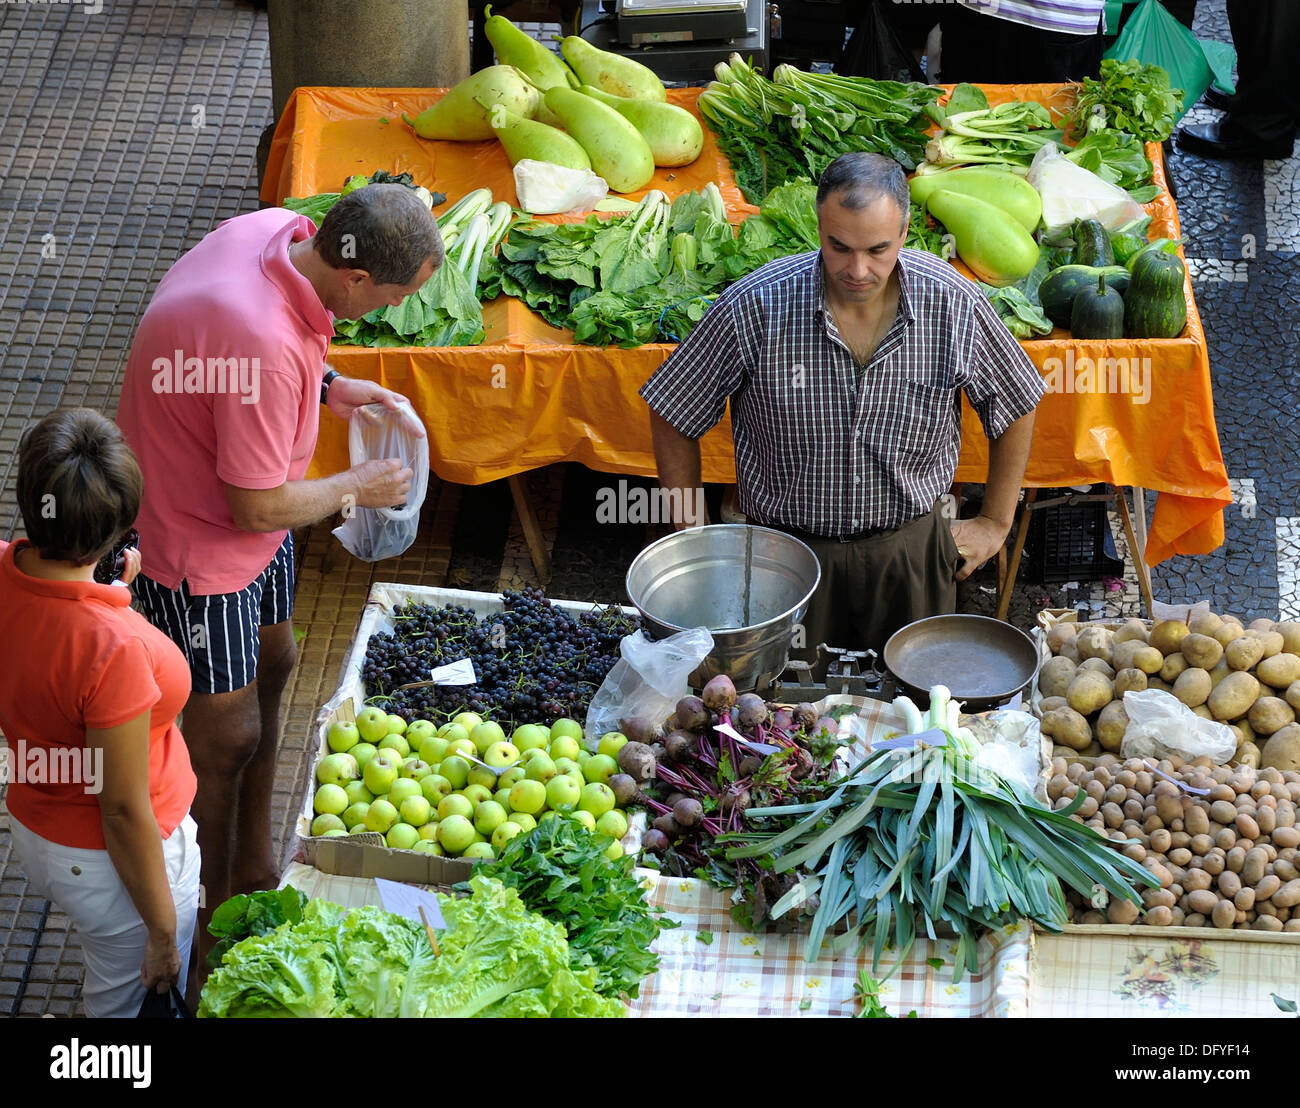 A man selecting black grapes on a fresh fruit and vegetable stall Funchal Madeira Portugal - Stock Image